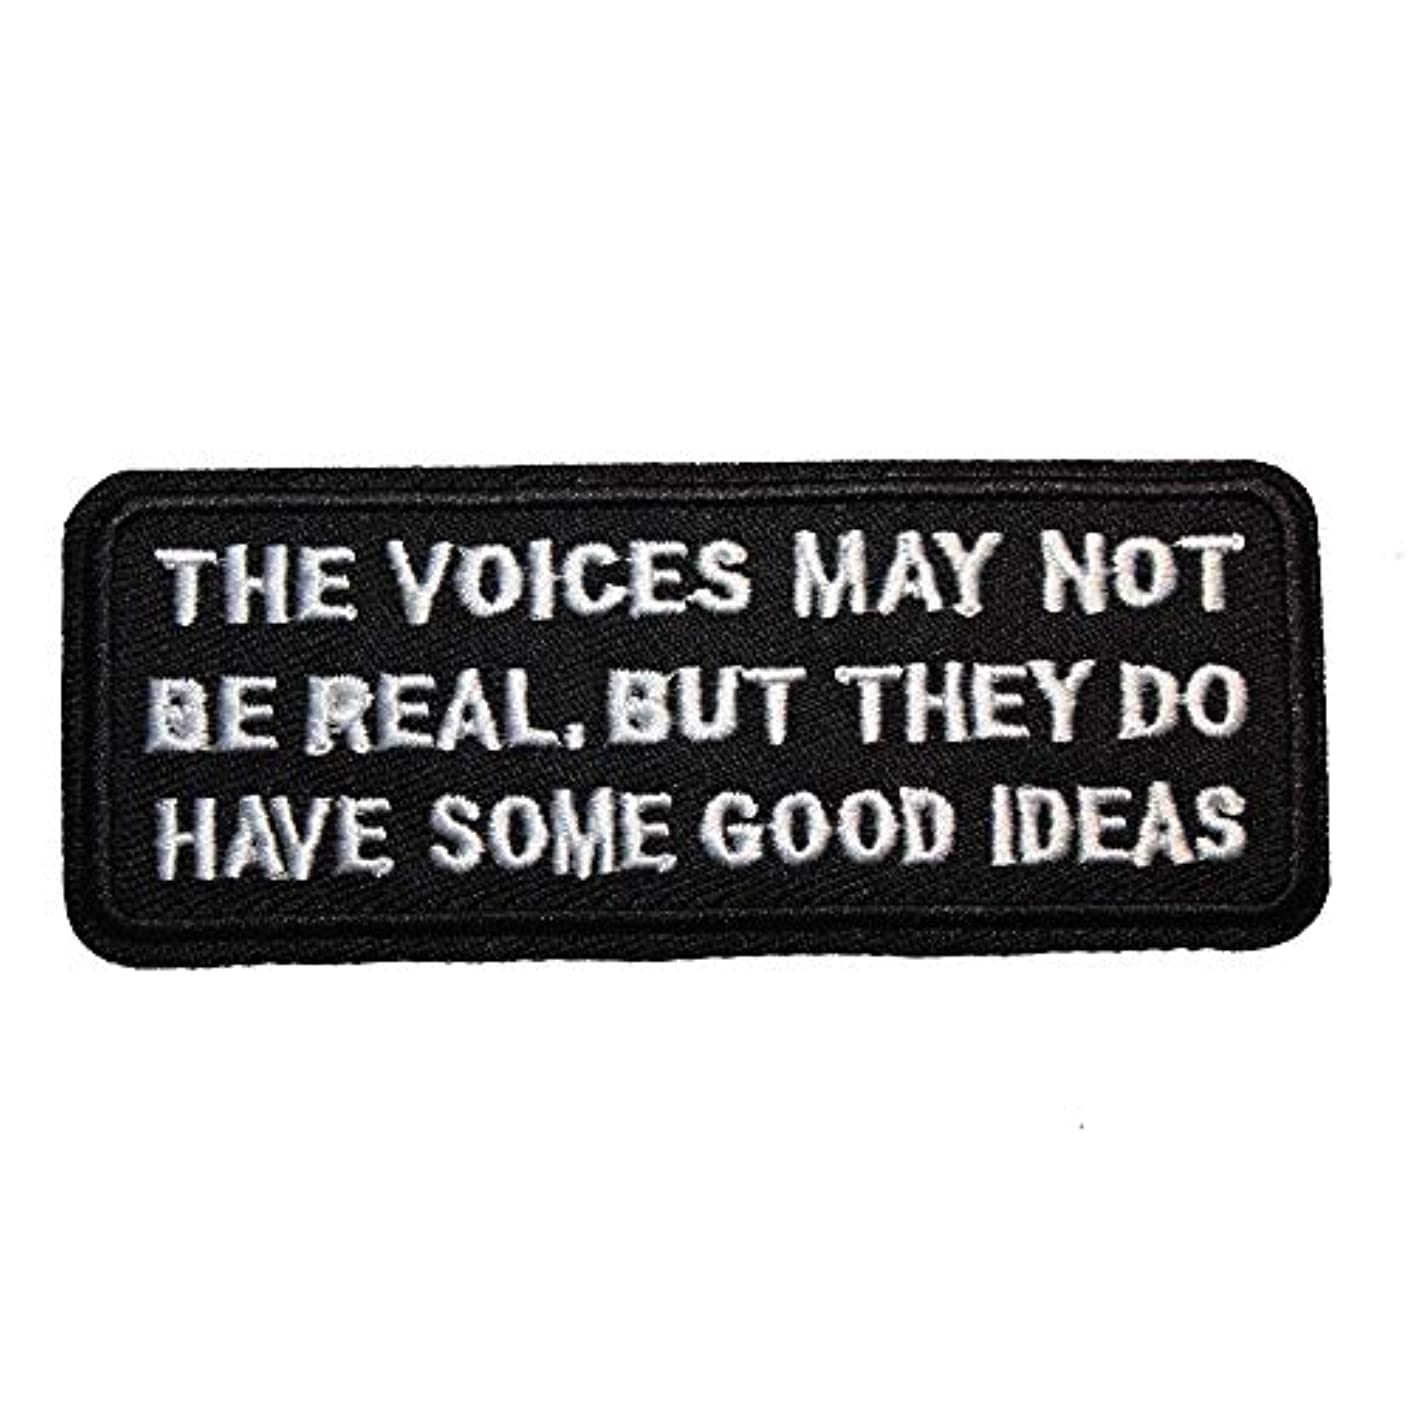 U-Sky Sew or Iron on Patches - The Voice May NOT BE Real BUT They DO Have Some Good Ideas Patch